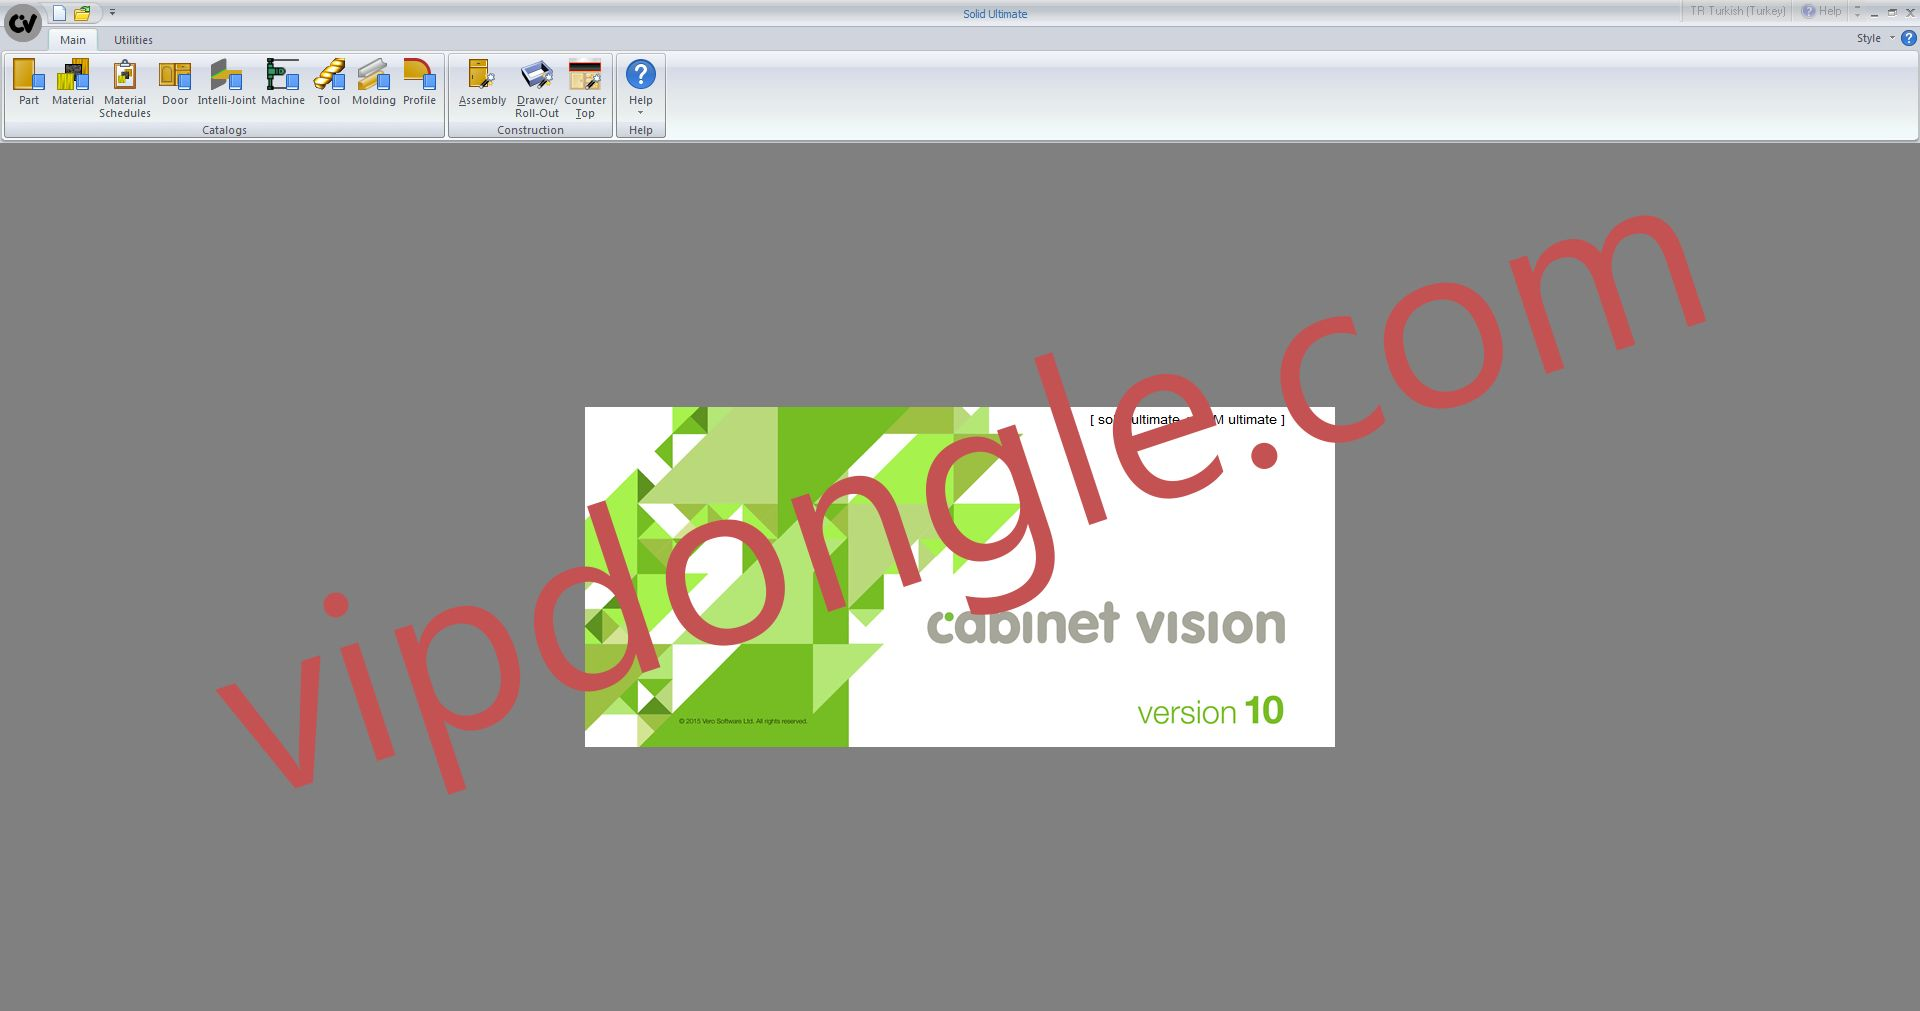 Cabinet Vision 10 Sentinel Dongle | Vip Dongle Team